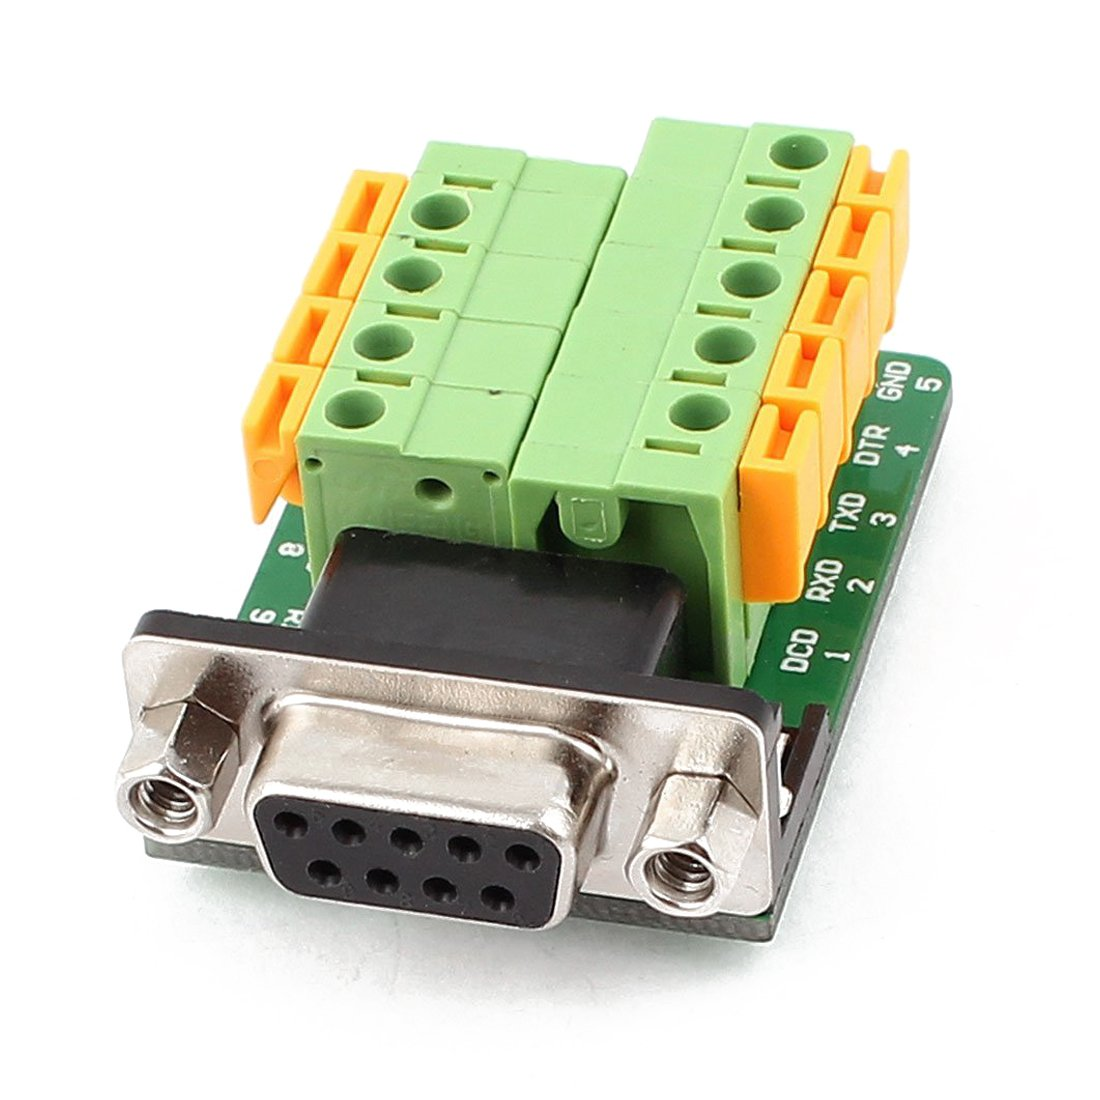 DB9 Female Adapter - TOOGOO(R) DB9 RS232 Serial Female Adapter Plate to 9 Position Terminal Connector Black+Green+Yellow